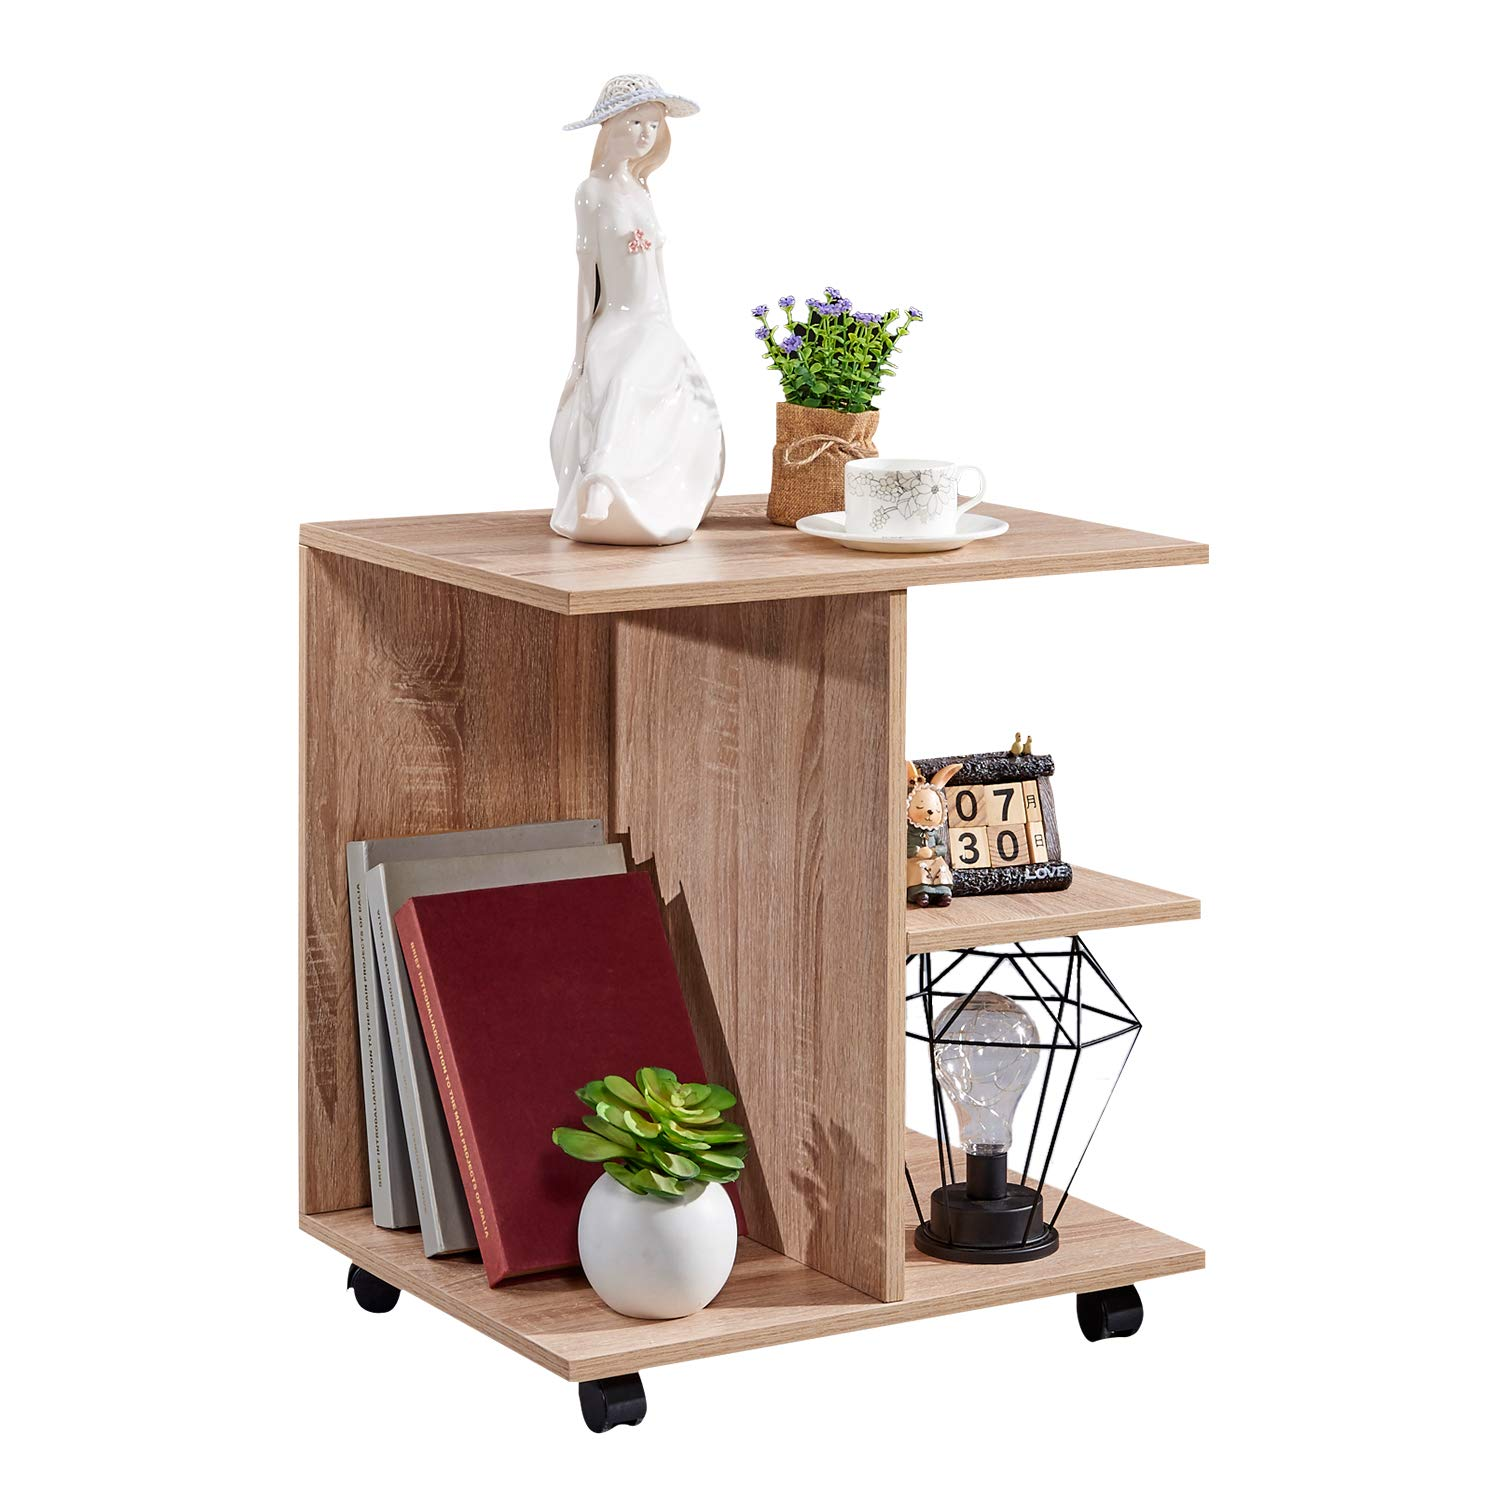 GreenForest Bedside Table Wooden 21.65''H with Lockable Wheels Nightstand Storage Shelf Printer Stand End Table for Bedroom,Oak